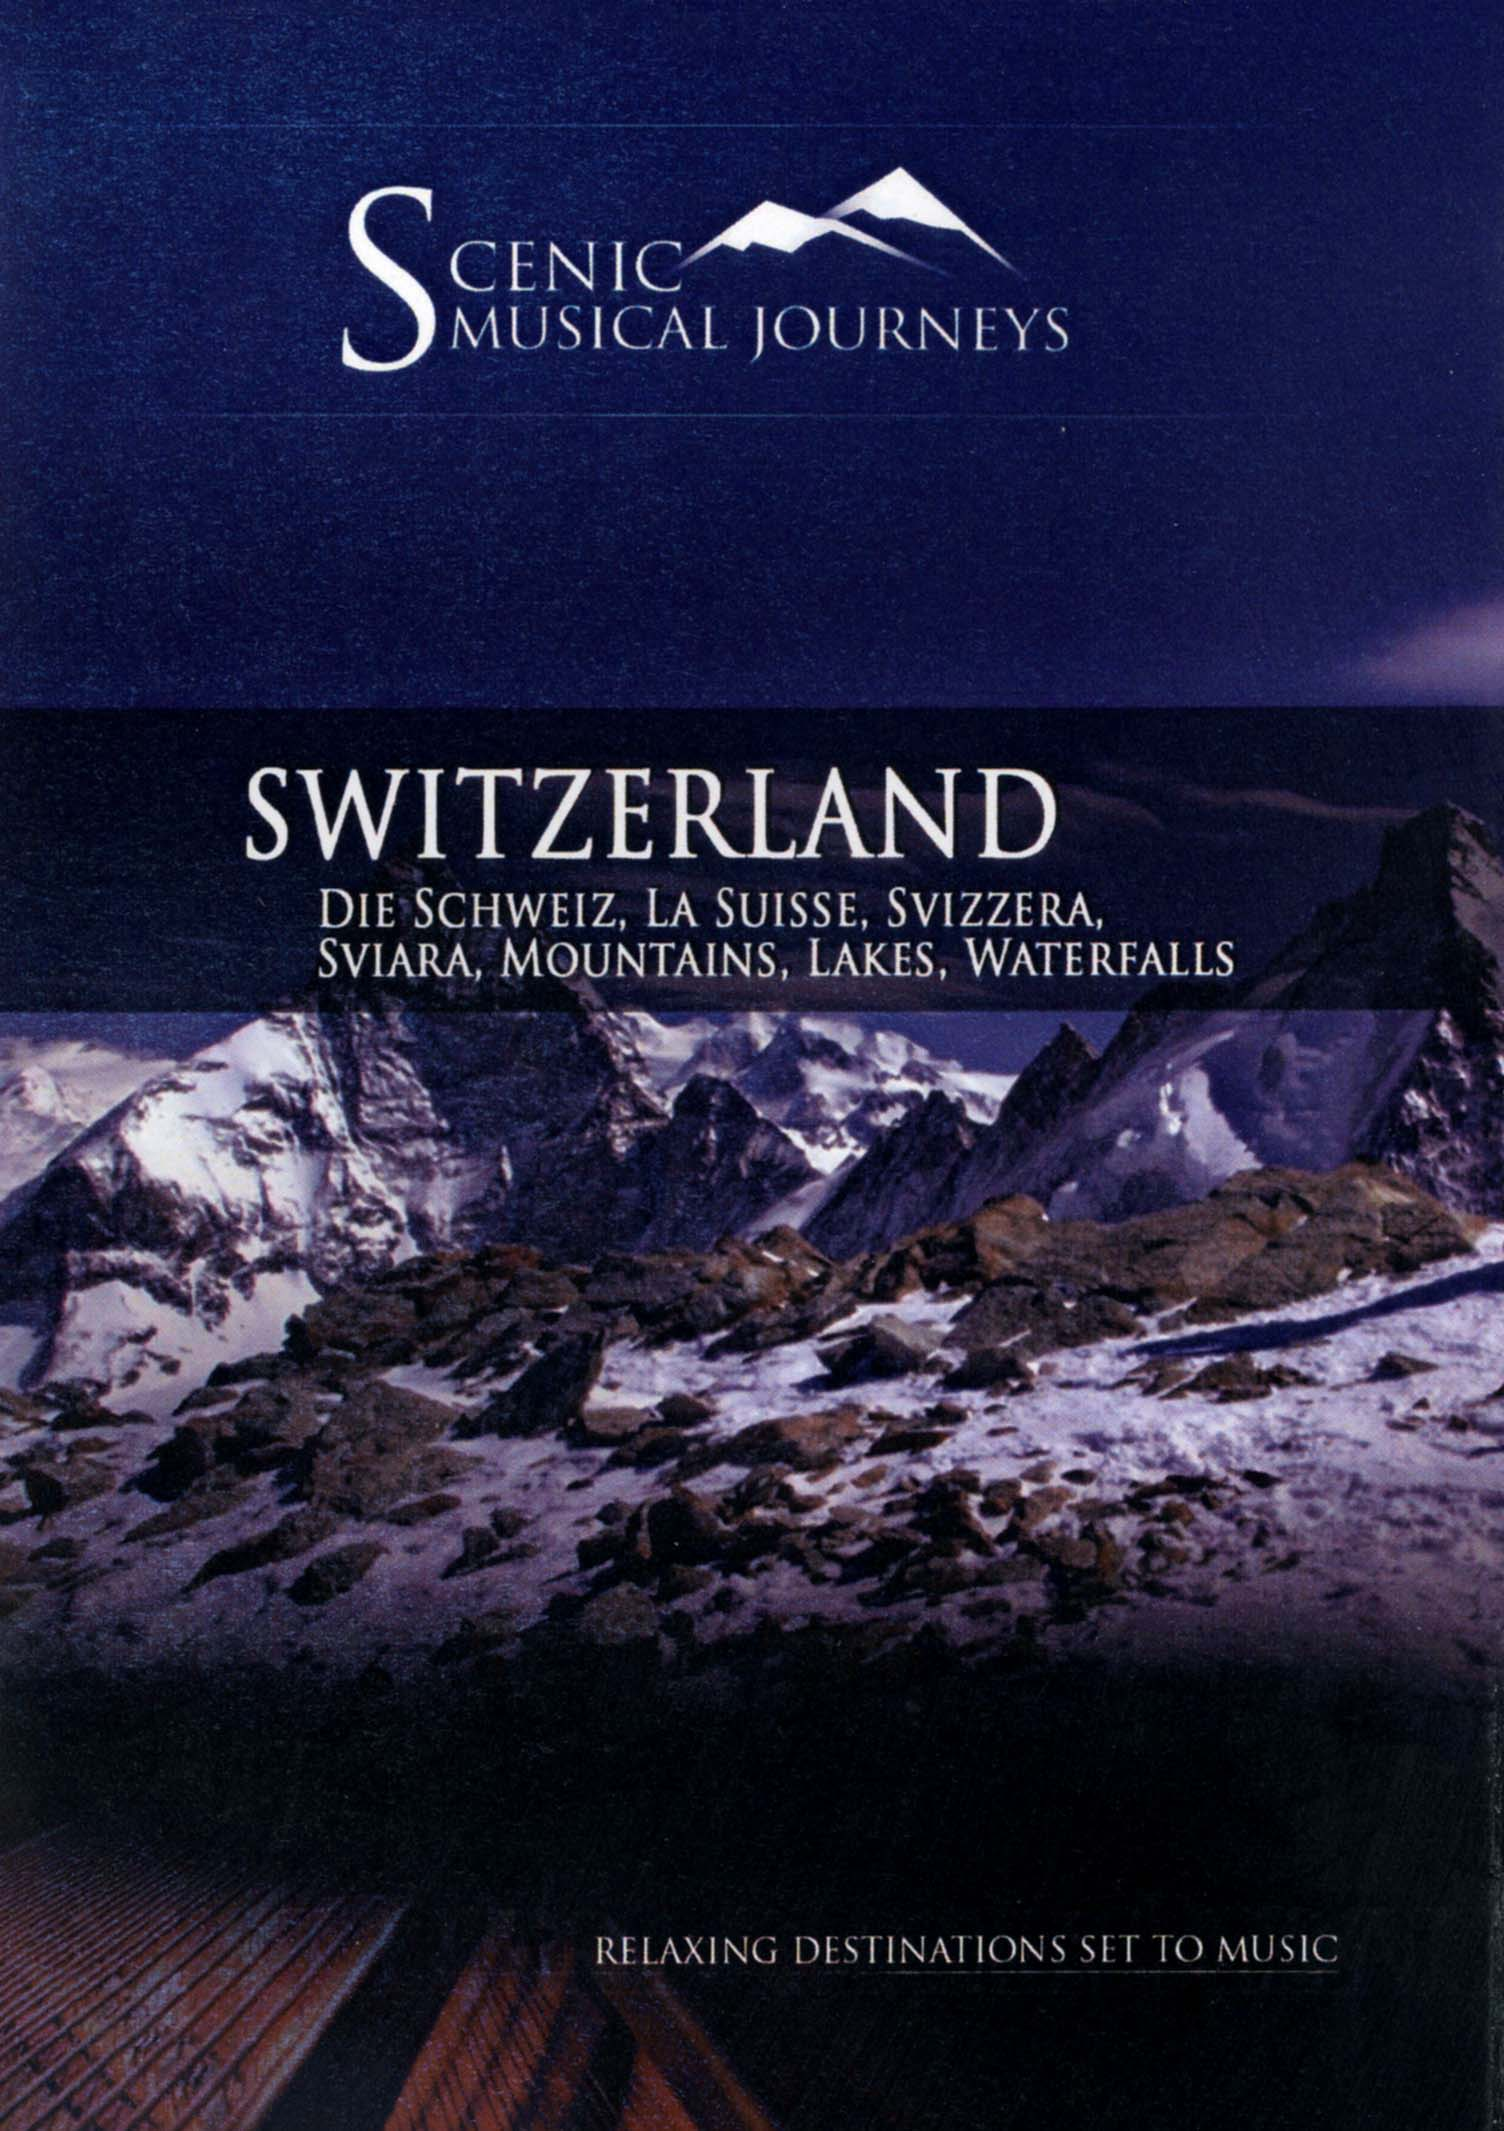 Scenic Musical Journeys: Switzerland - Die Schweiz, La Suisse, Svizzera, Sviara, Mountains, Lakes